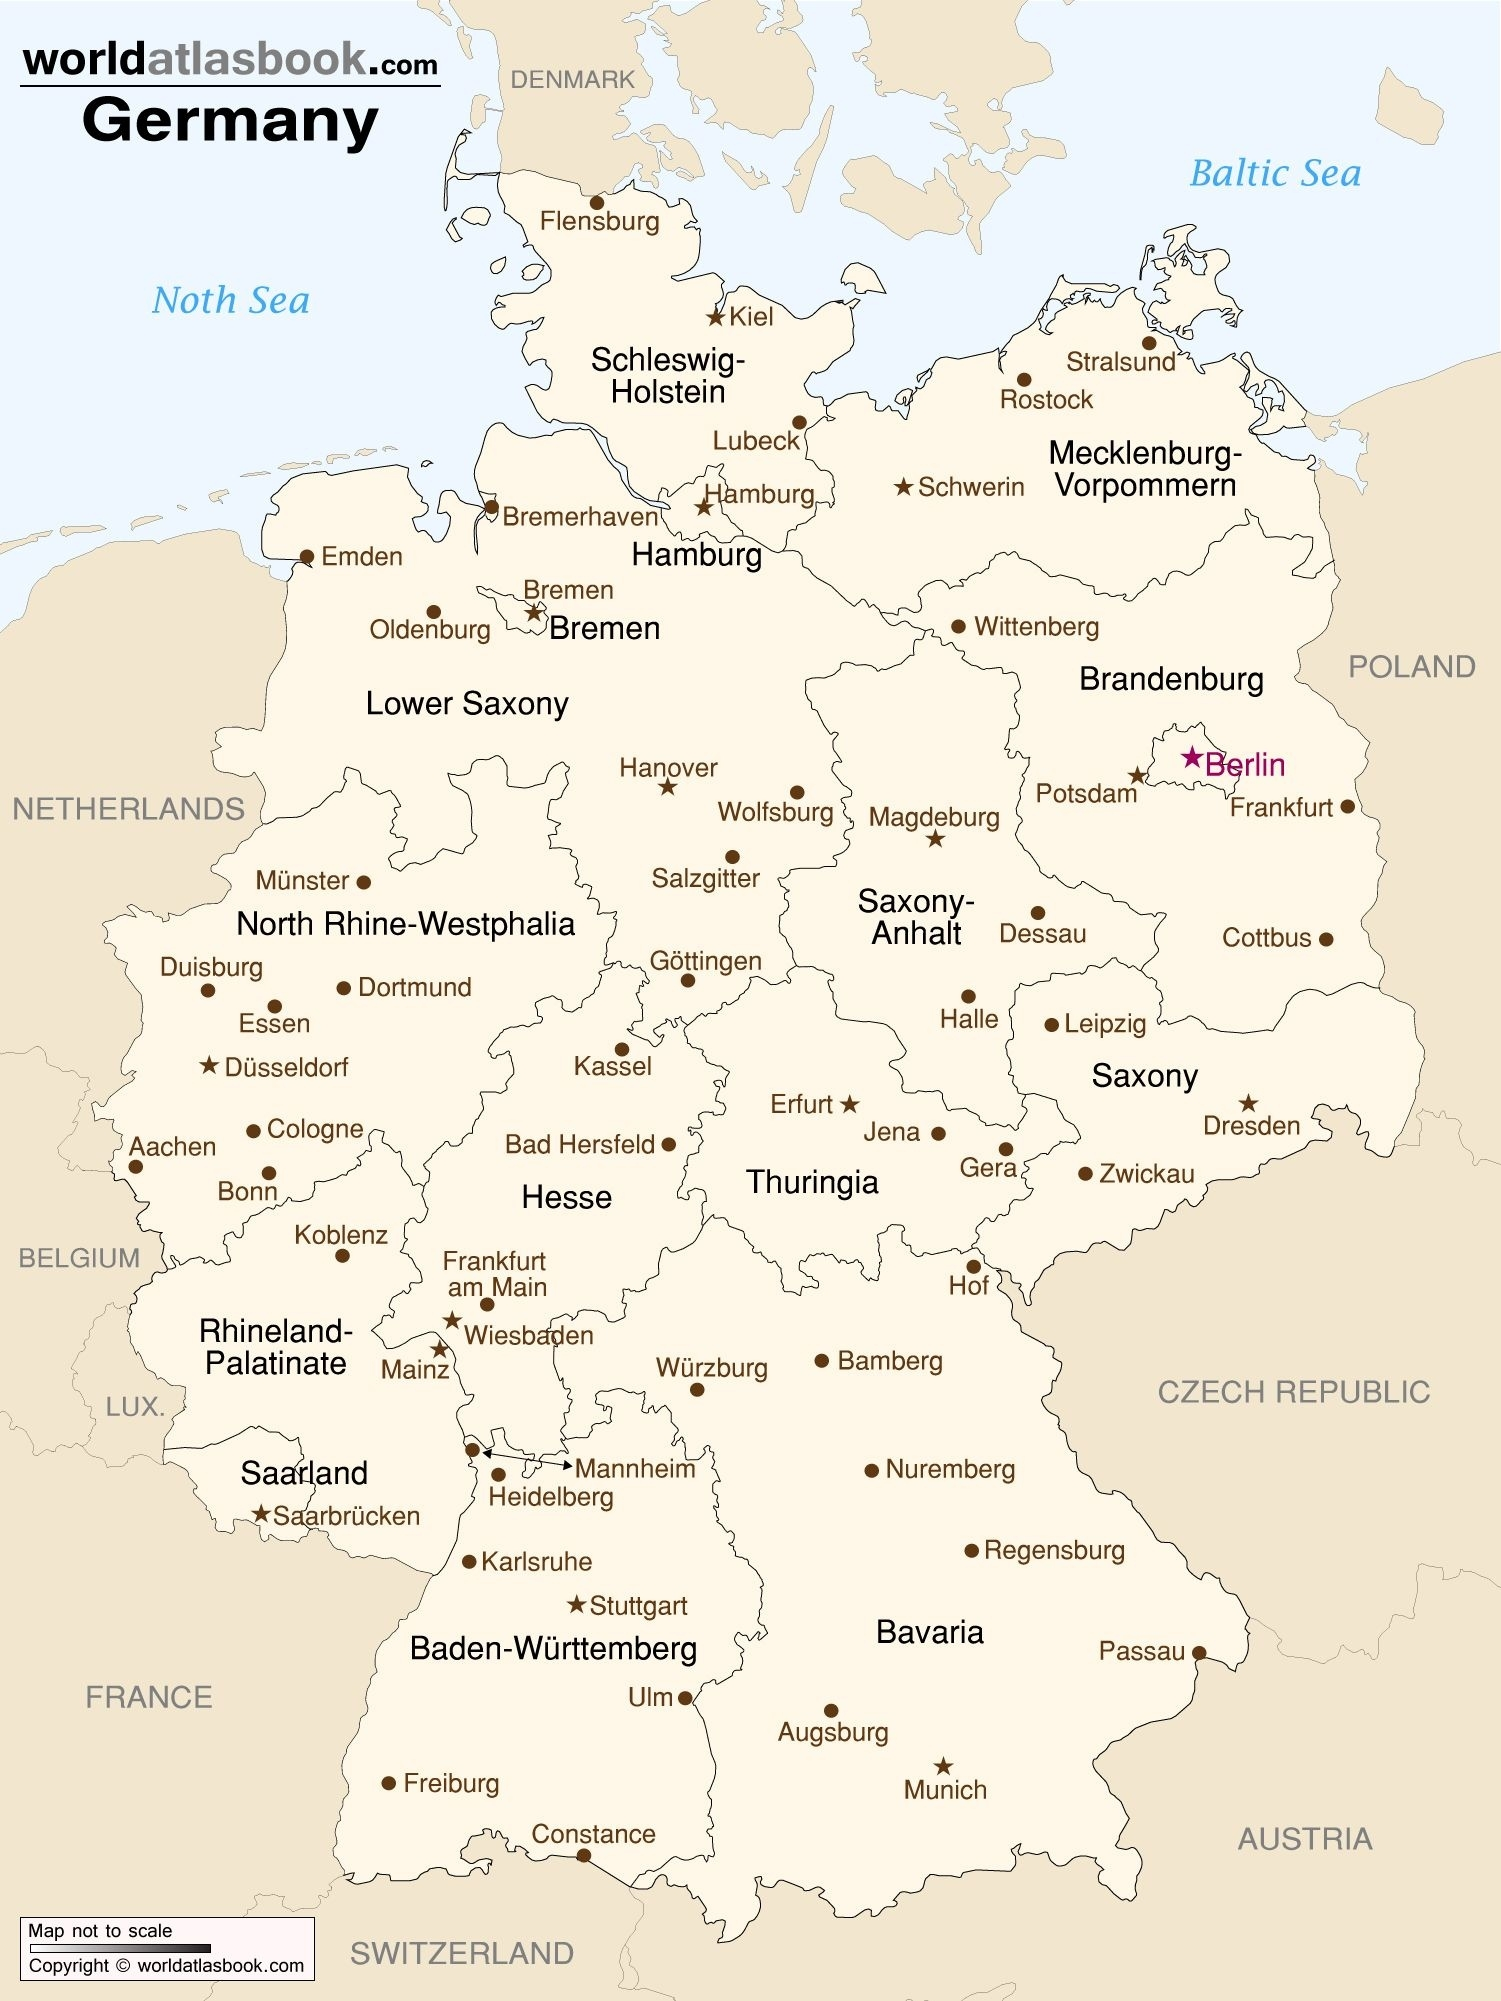 Map Of Germany With States And Cities   Germany   Map, Germany within Map Of Germany And Its States